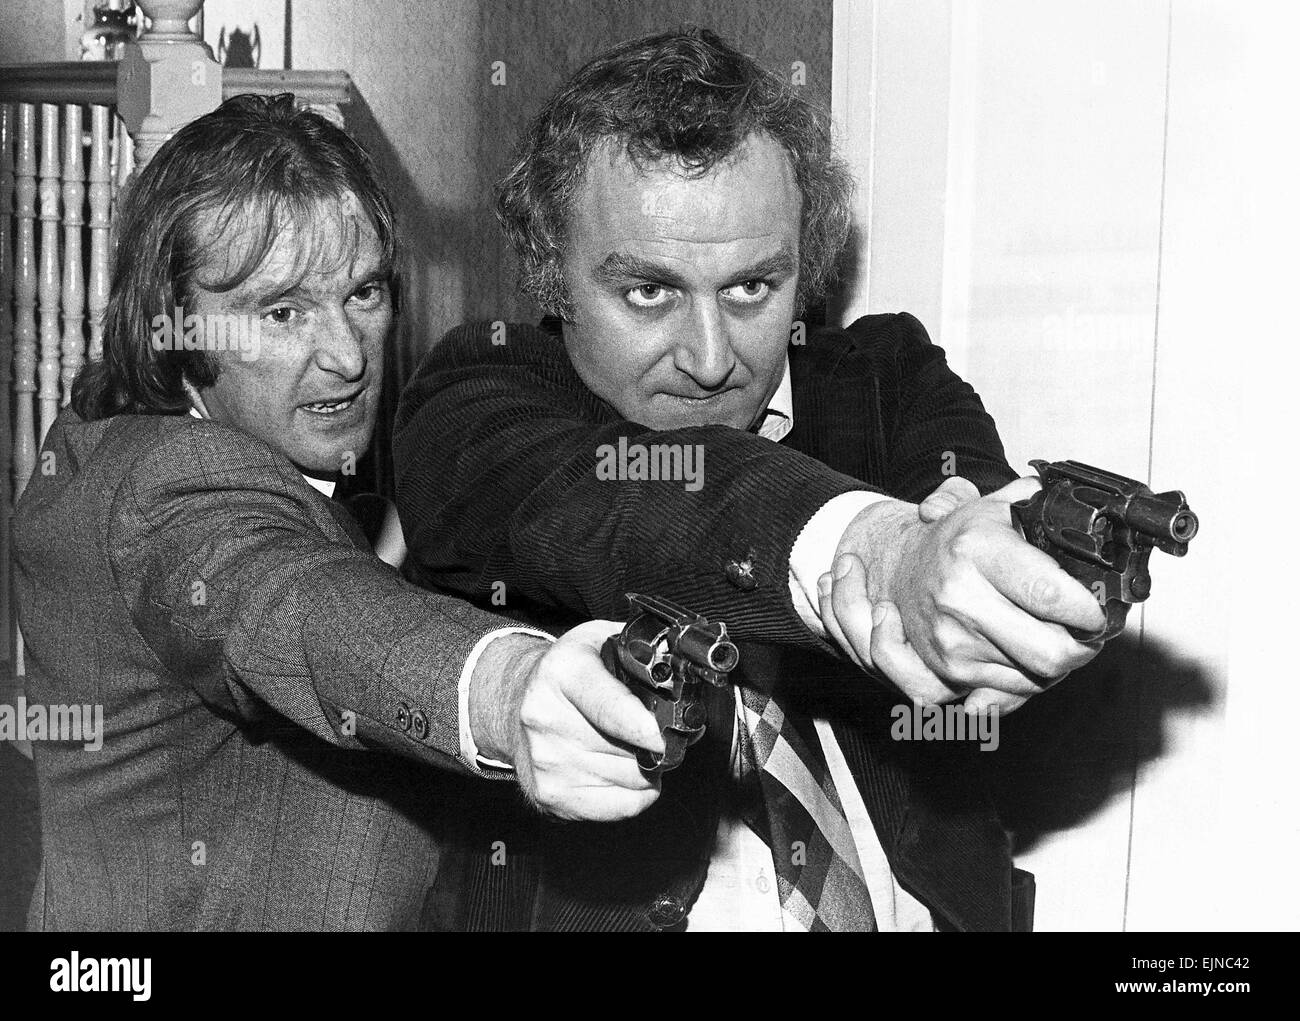 Dennis Waterman (L) and John Thaw in The Sweeney television series - Stock Image